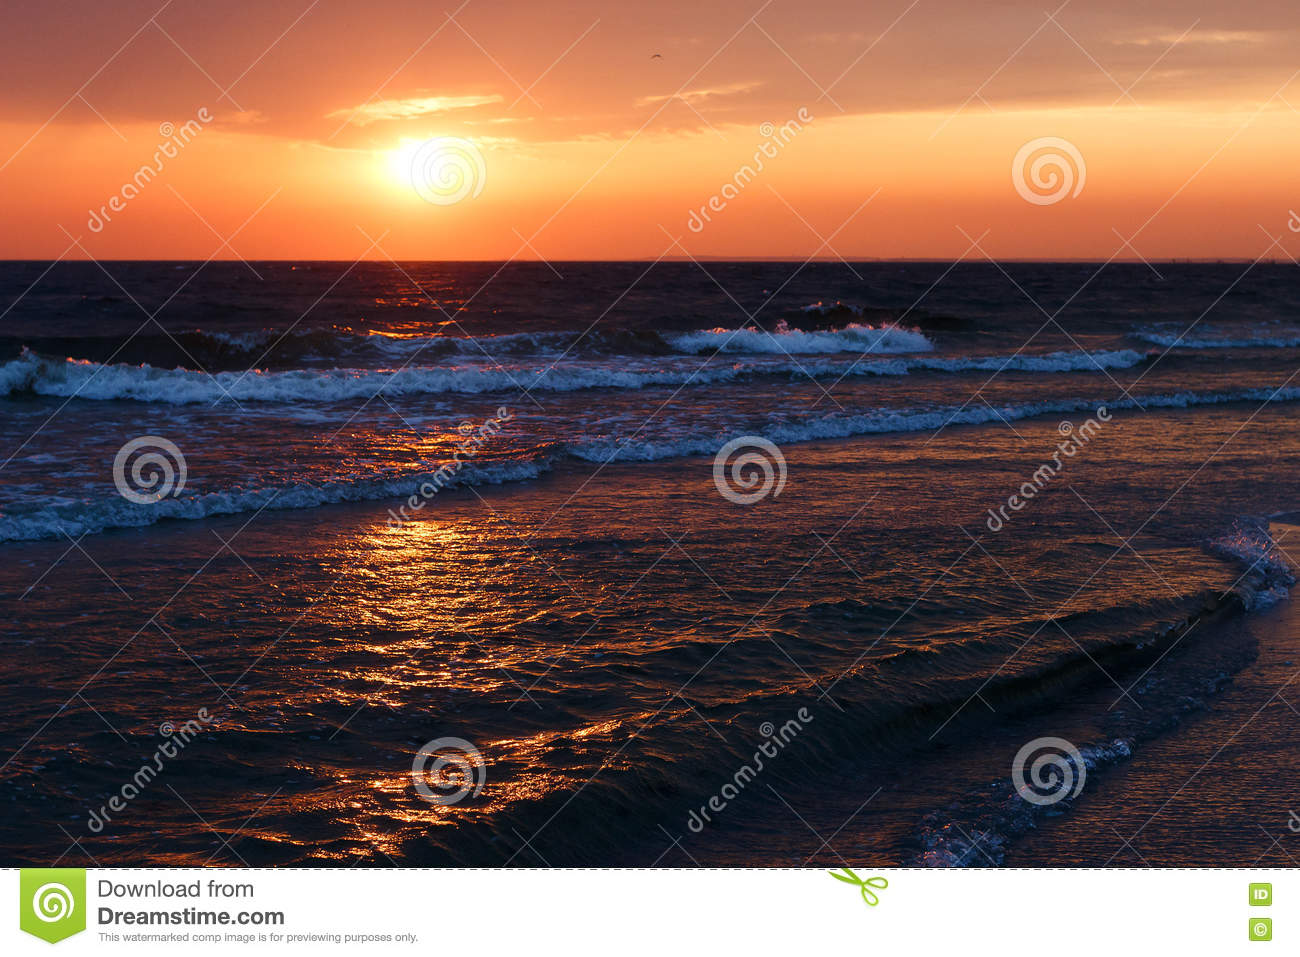 Beautiful golden sunset in the sea with saturated sky and clouds. Reflection in the water. Rocky coastal line. Peaceful serene lan